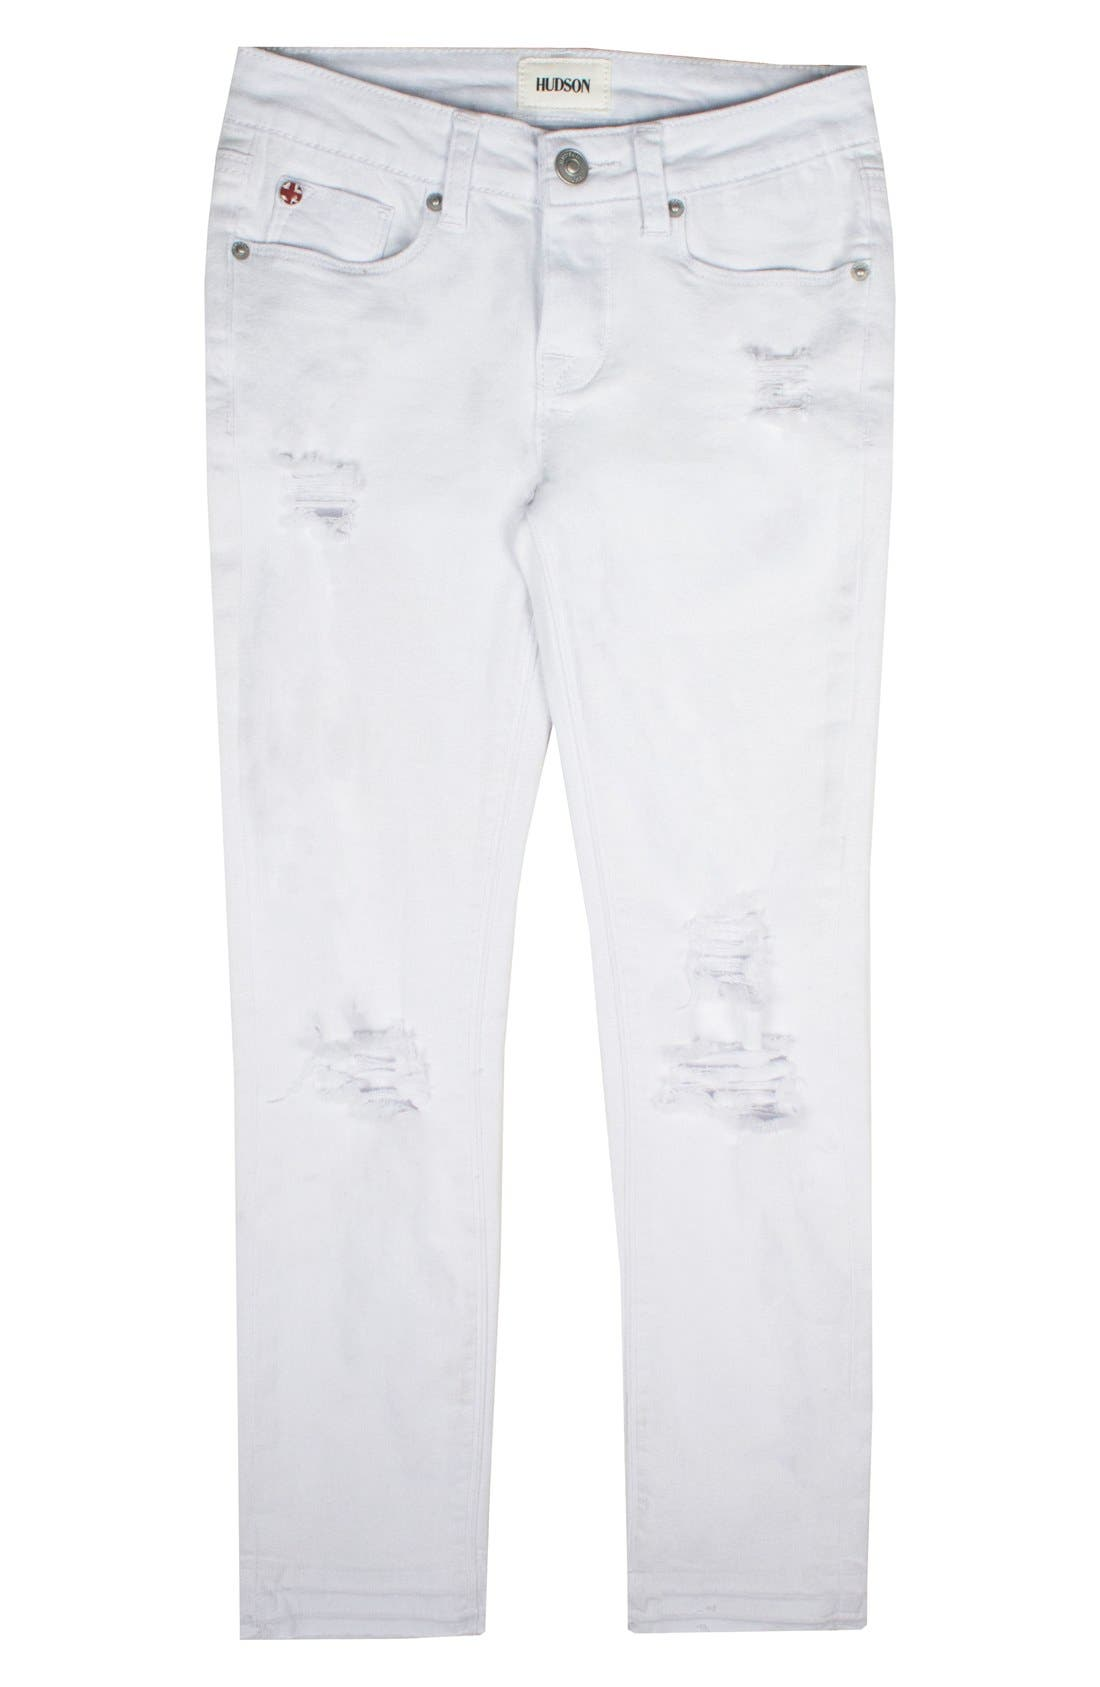 Seaside Crop Skinny Jeans,                         Main,                         color, White Abyss